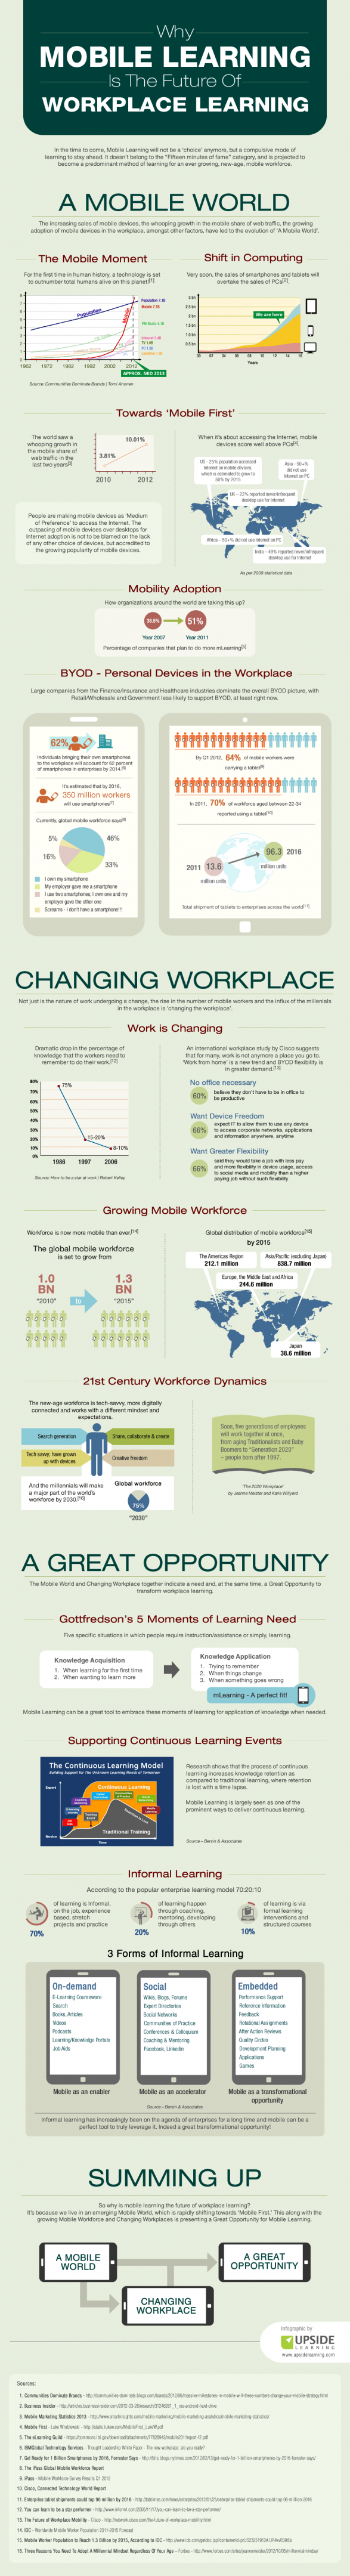 Why Mobile Learning Is The Future Of Workplace Learning